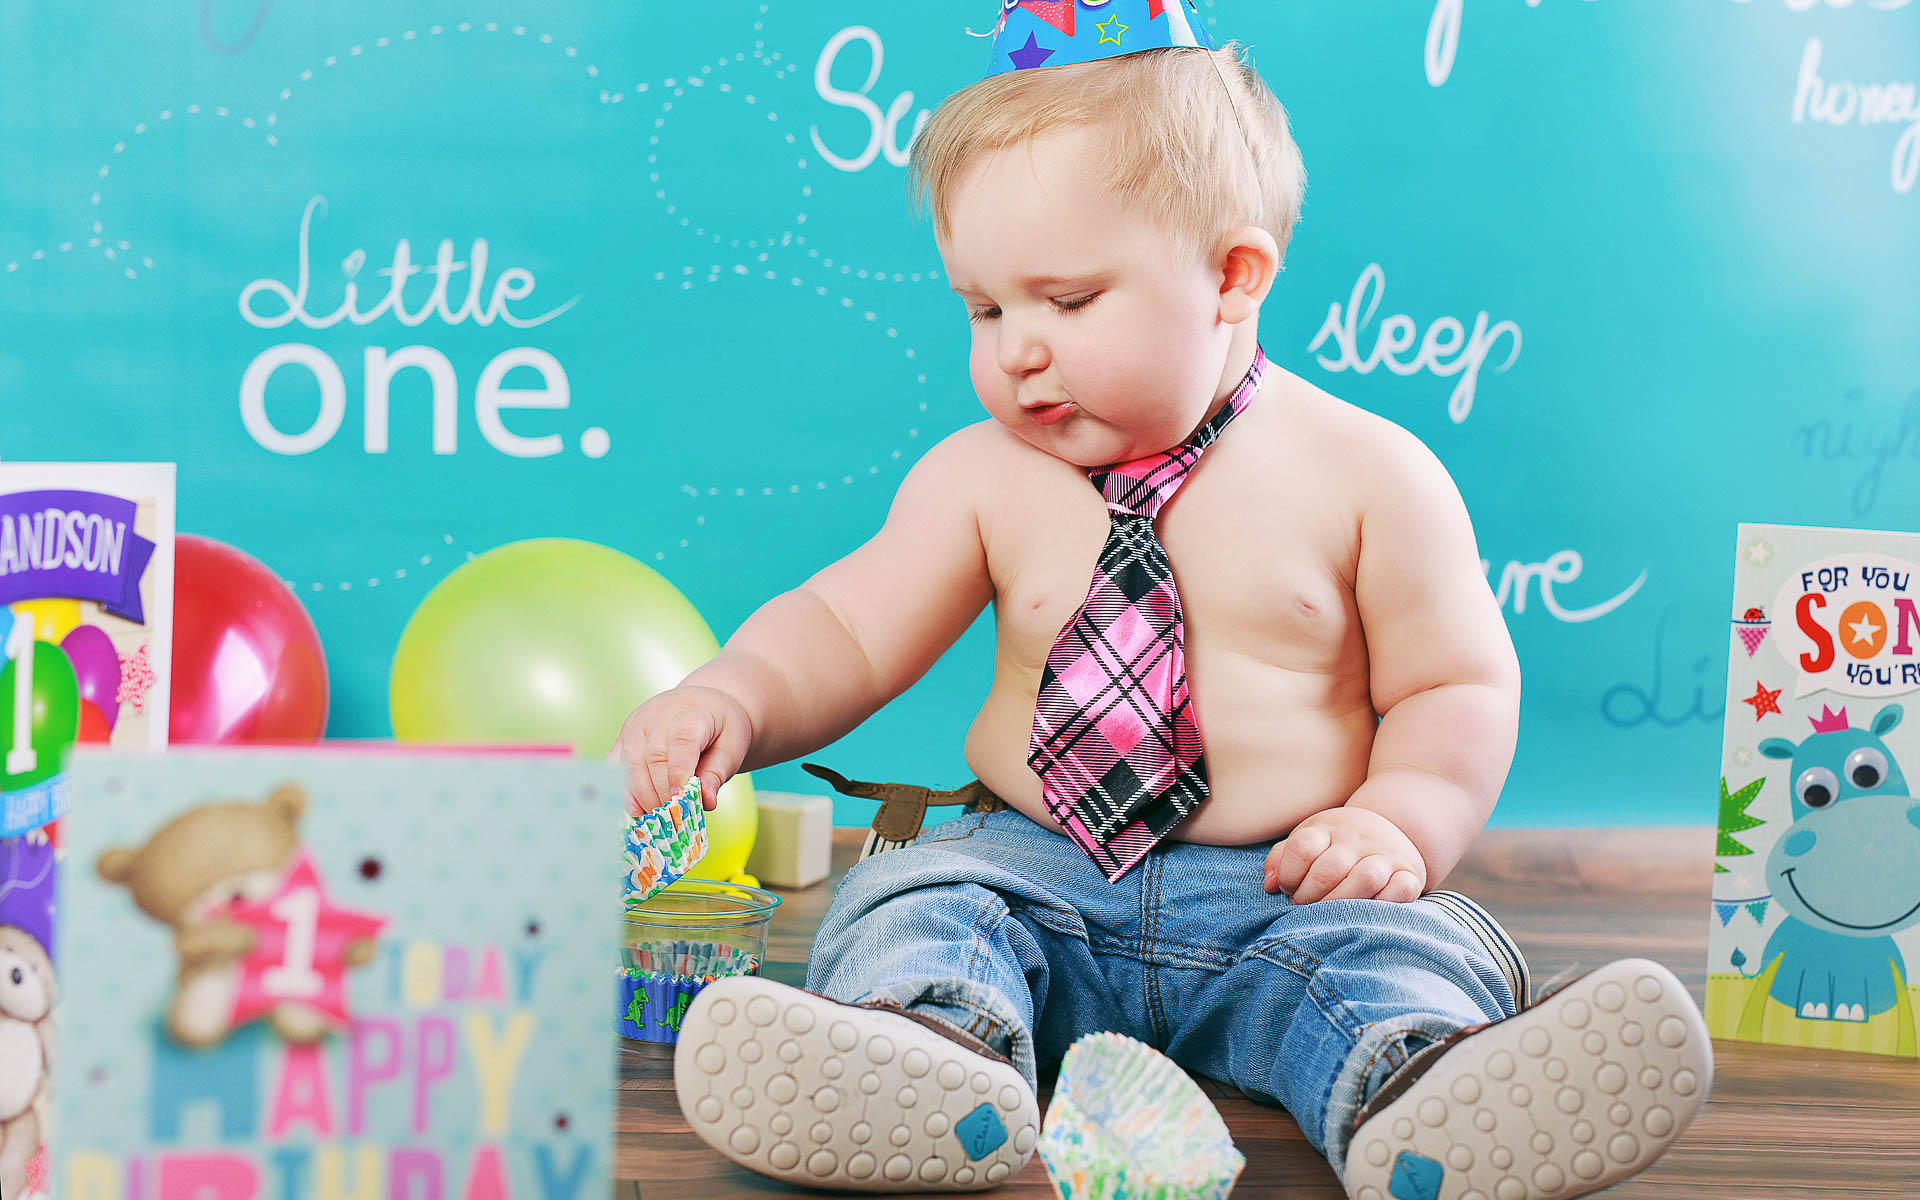 Nicks-first-birthday-photo-session-in-Andover by Arokis